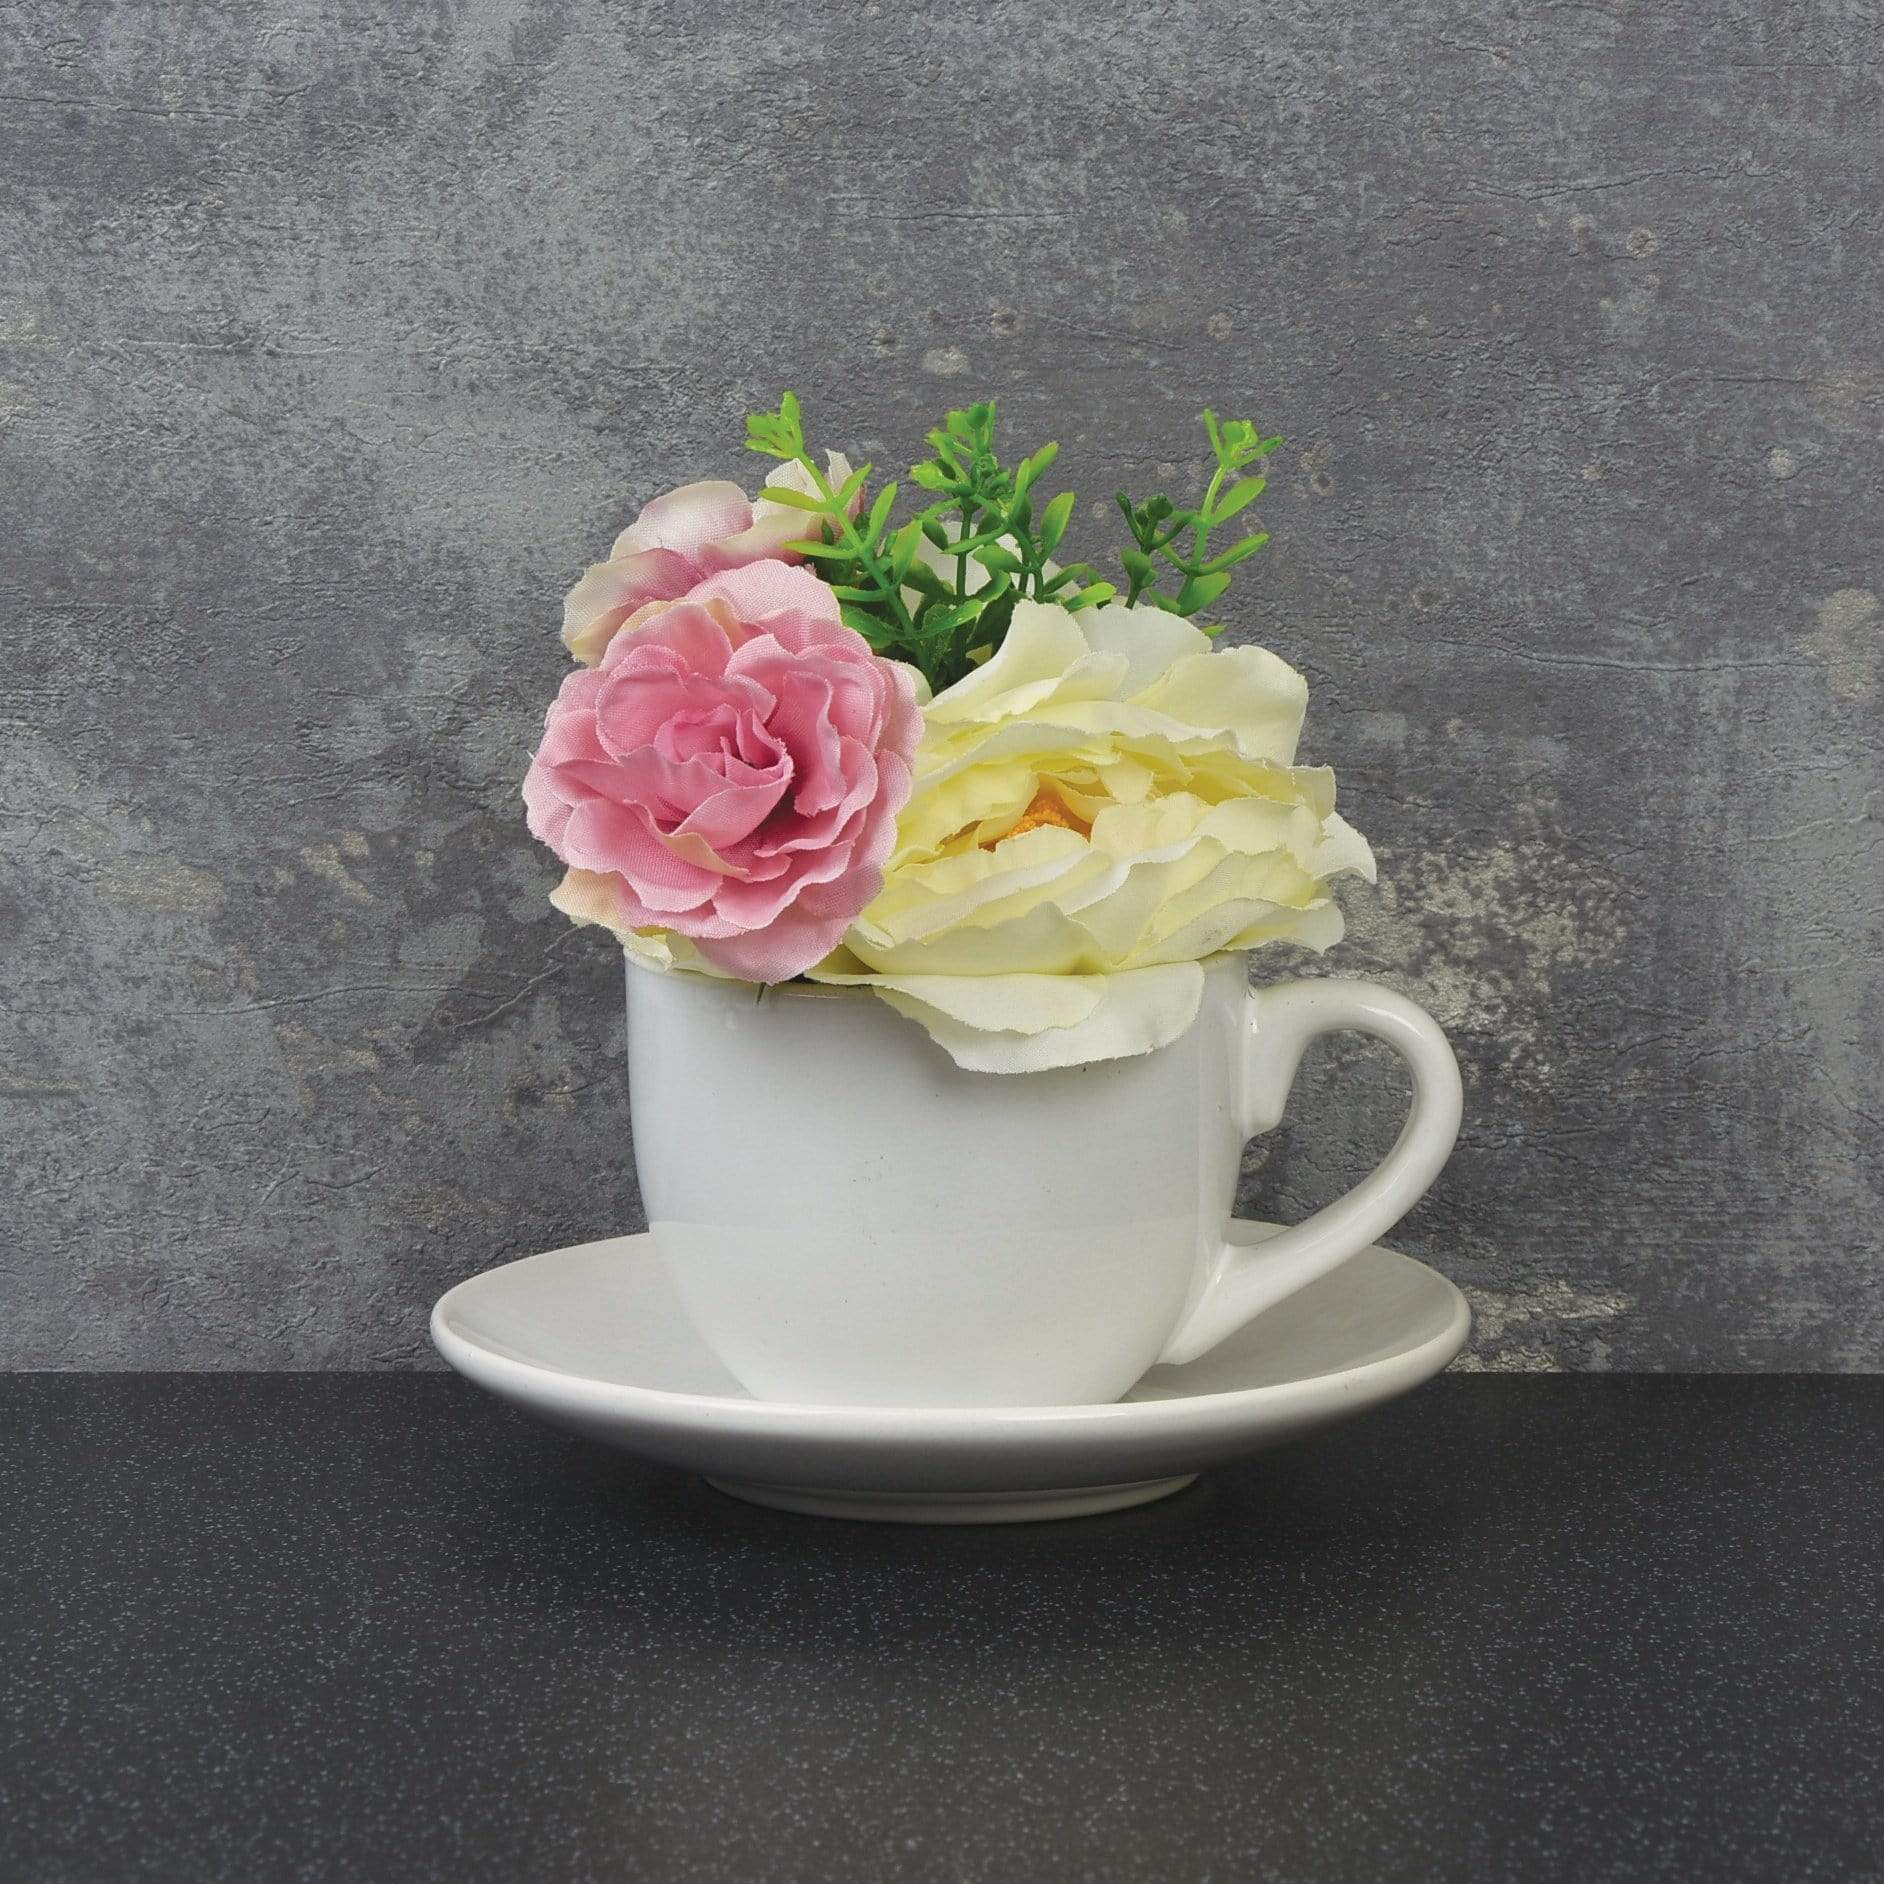 Candlelight Home Artificial Plants & Flowers Ceramic Teacup & Saucer with Peonies Pink 16.5cm 6PK